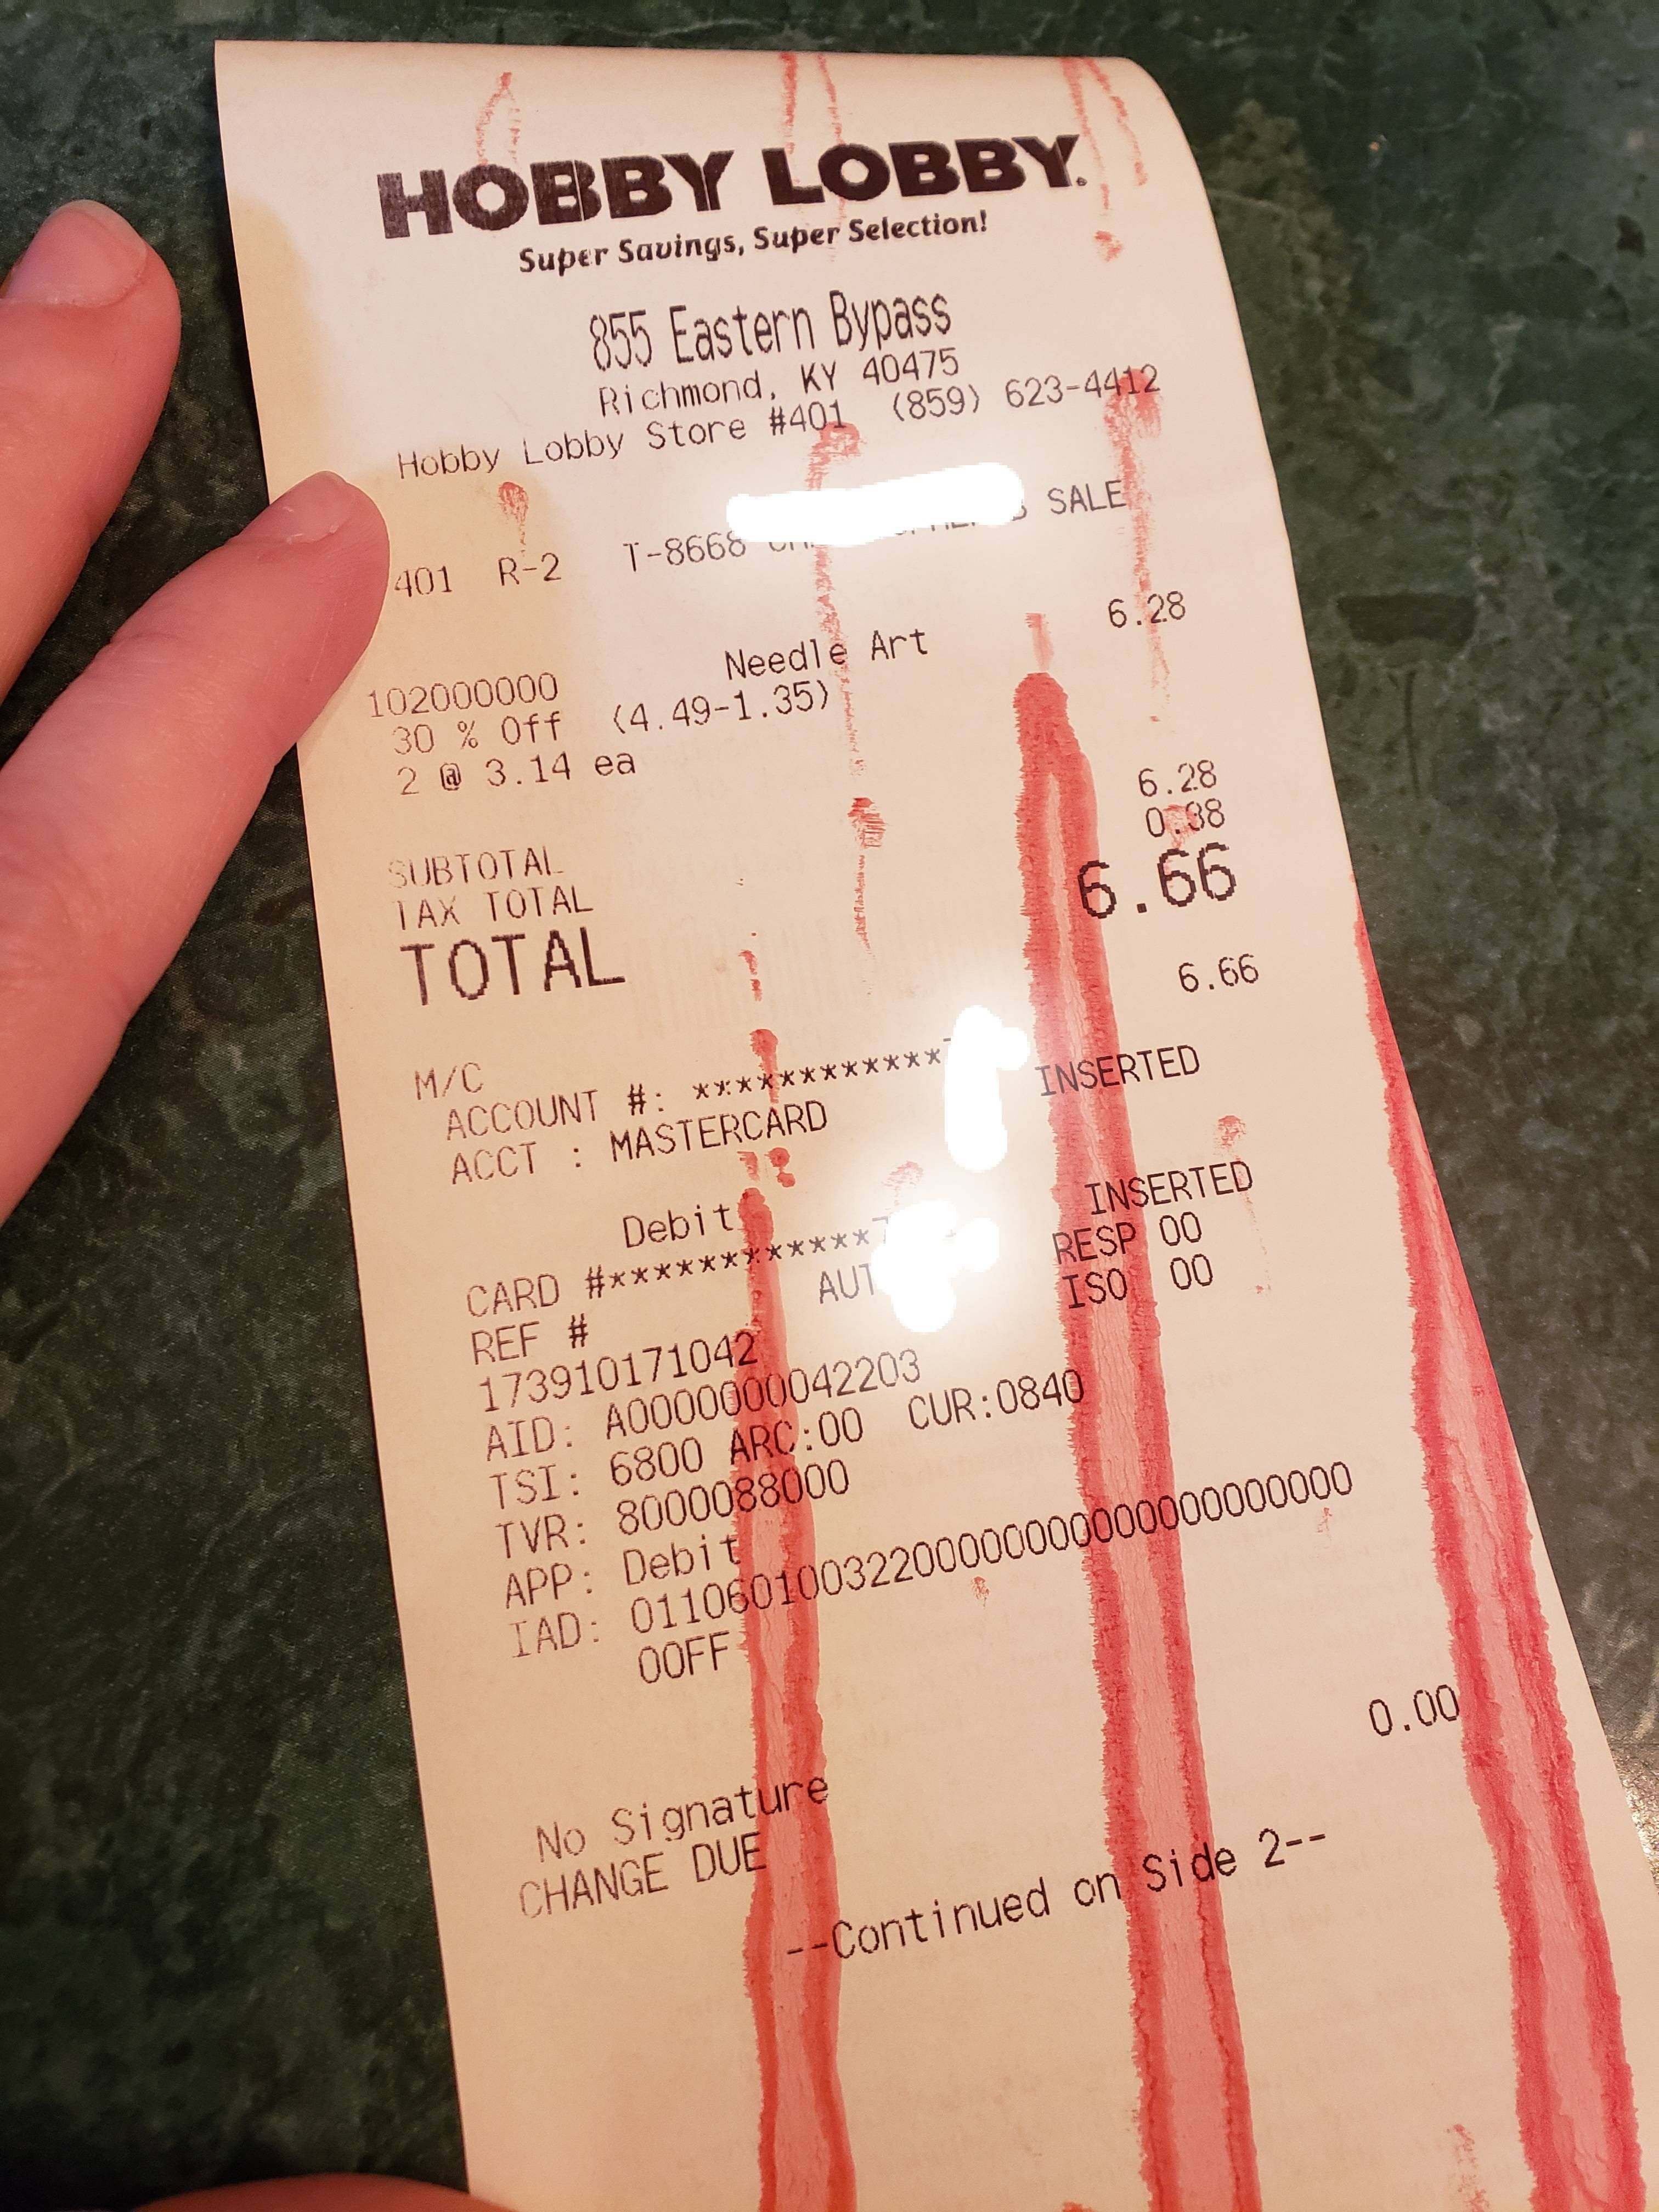 Fun Fact: when a Hobby Lobby purchase rings up $6.66 it receives the Mark of the Beast!